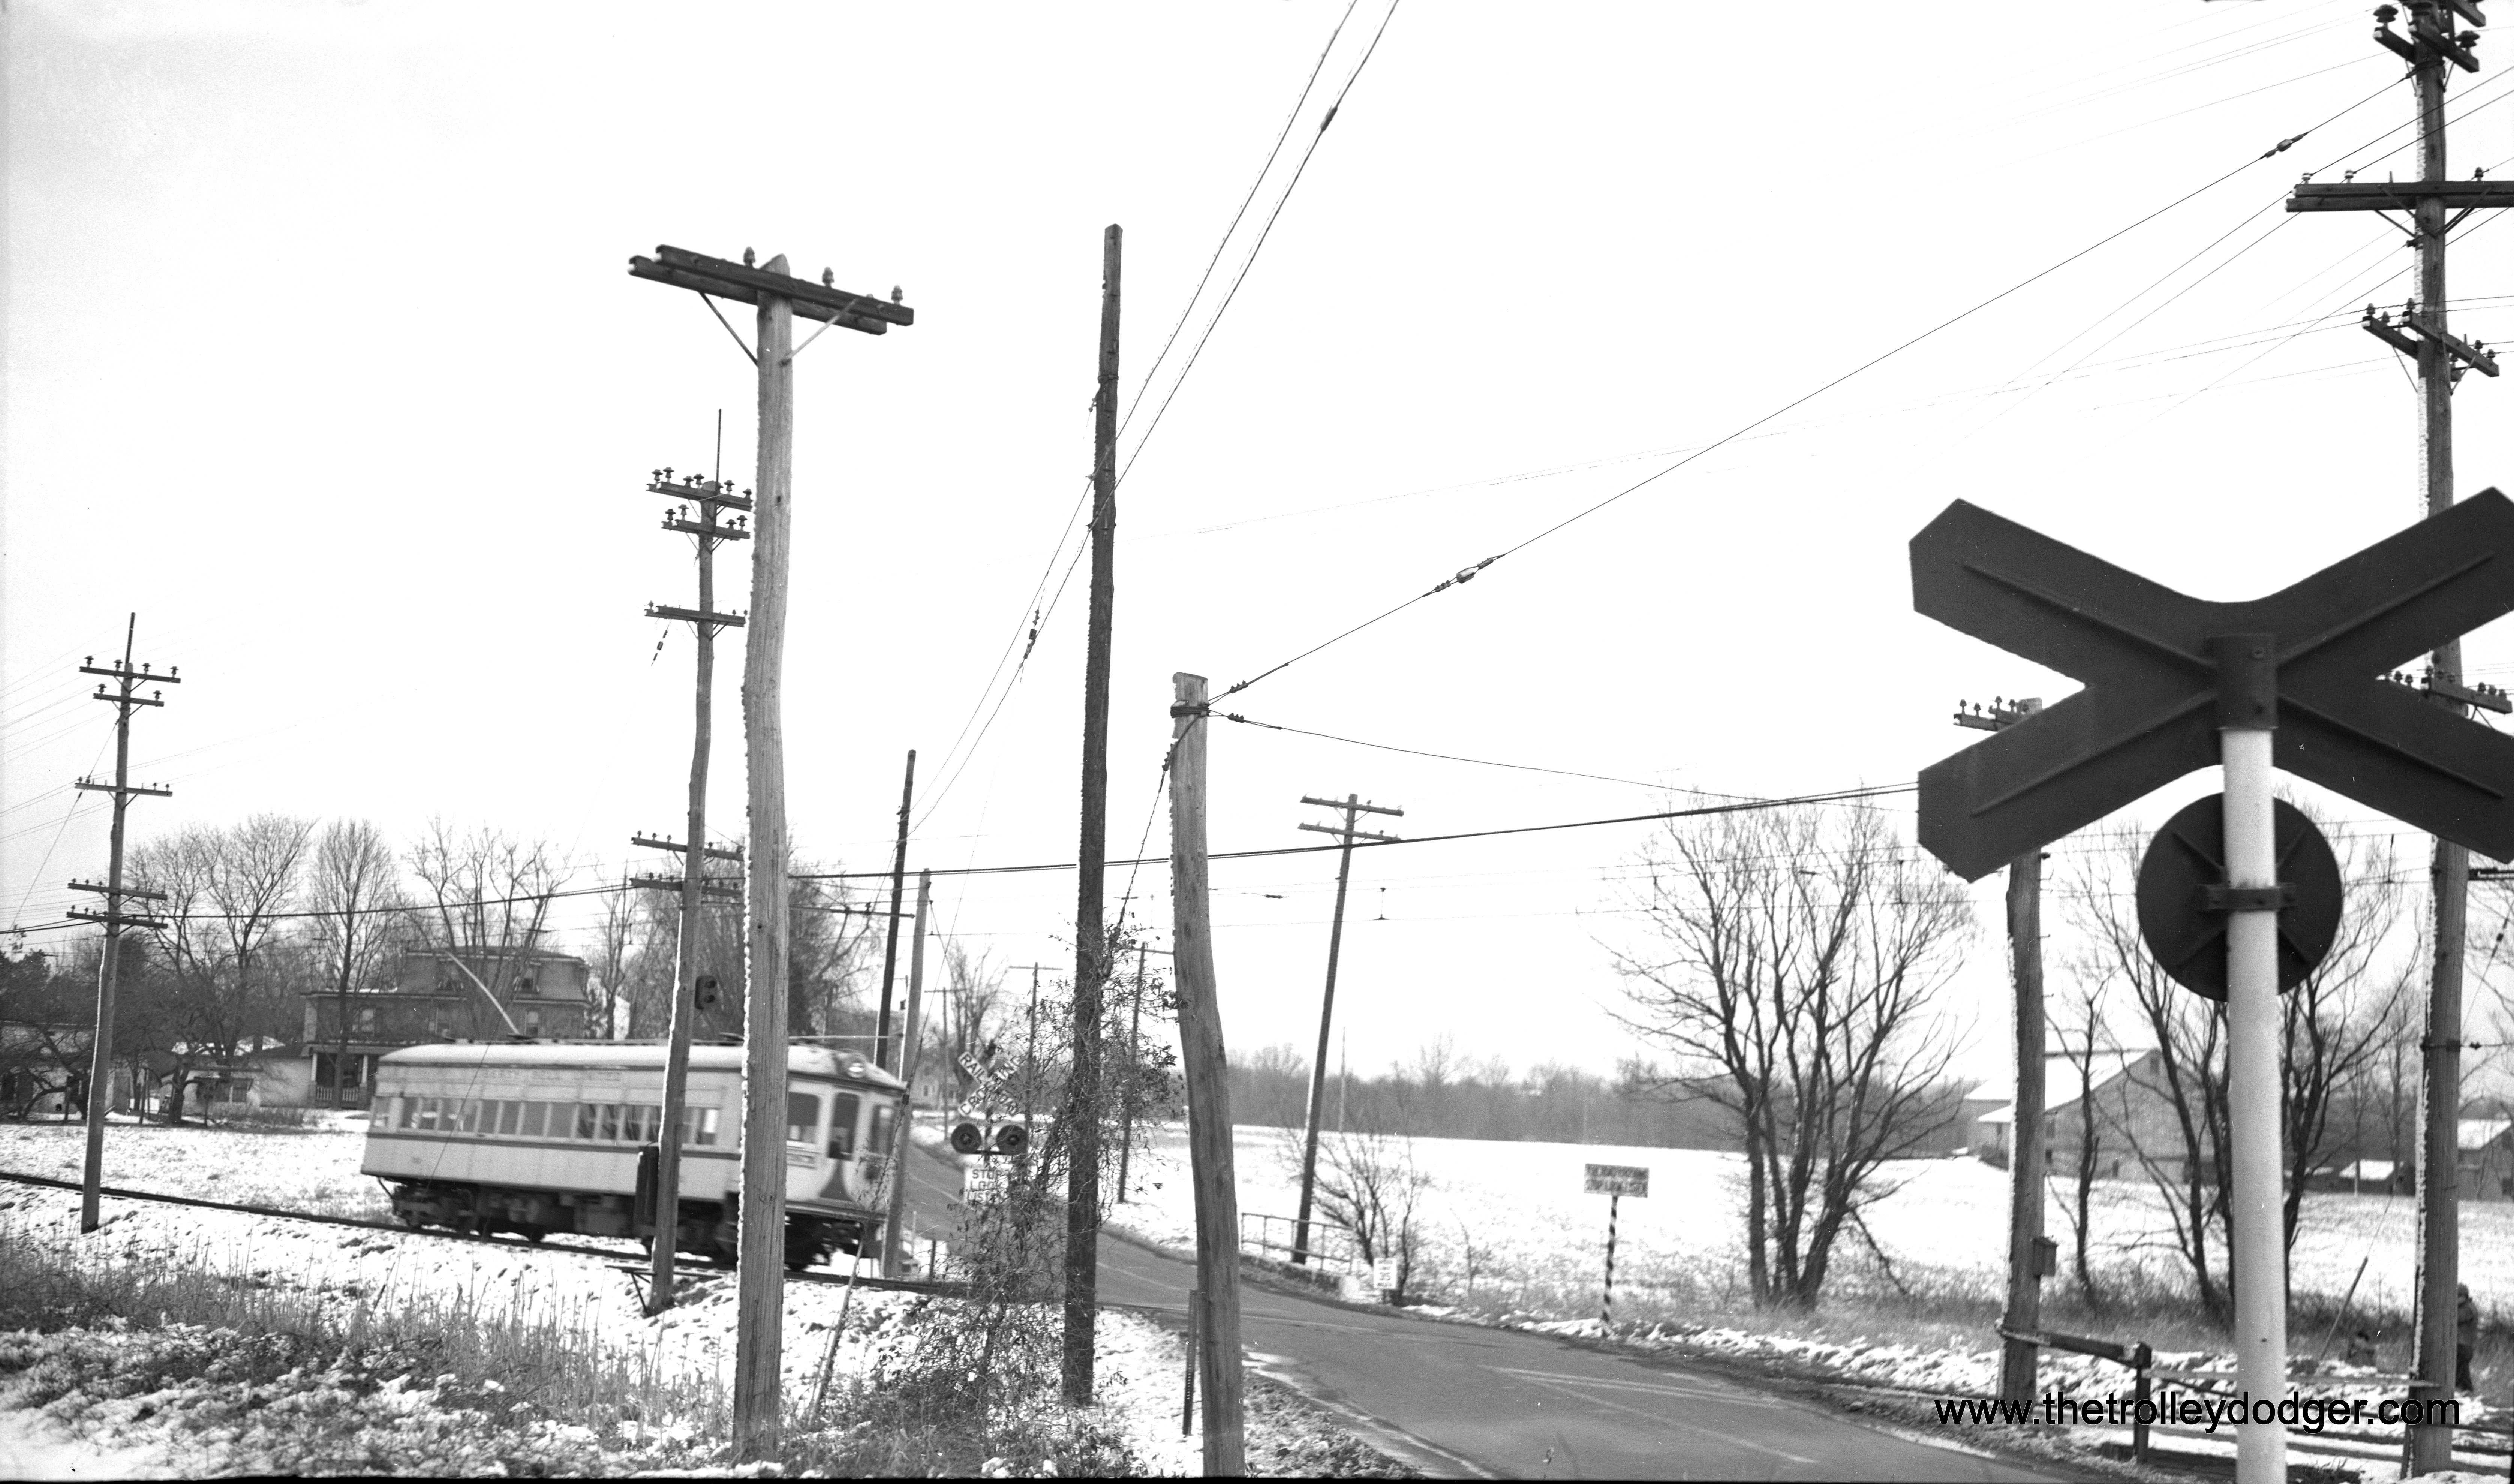 Illinois Traction System The Trolley Dodger Westpointe 3 Speed Fan Wiring Schematic Lvt 702 Is At Southbound West Point In This Wintry February 11